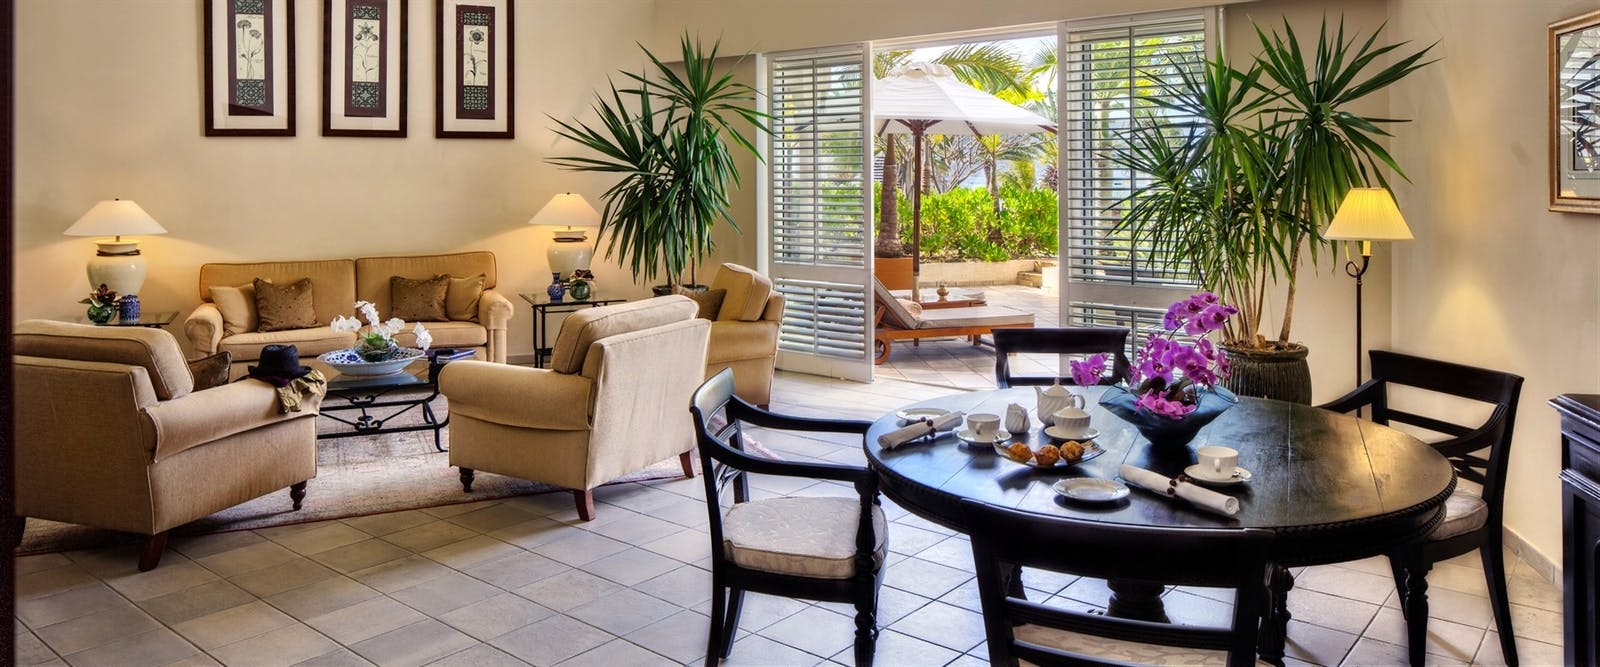 Colonial Ocean View Suite at The Residence Mauritius, Indian Ocean